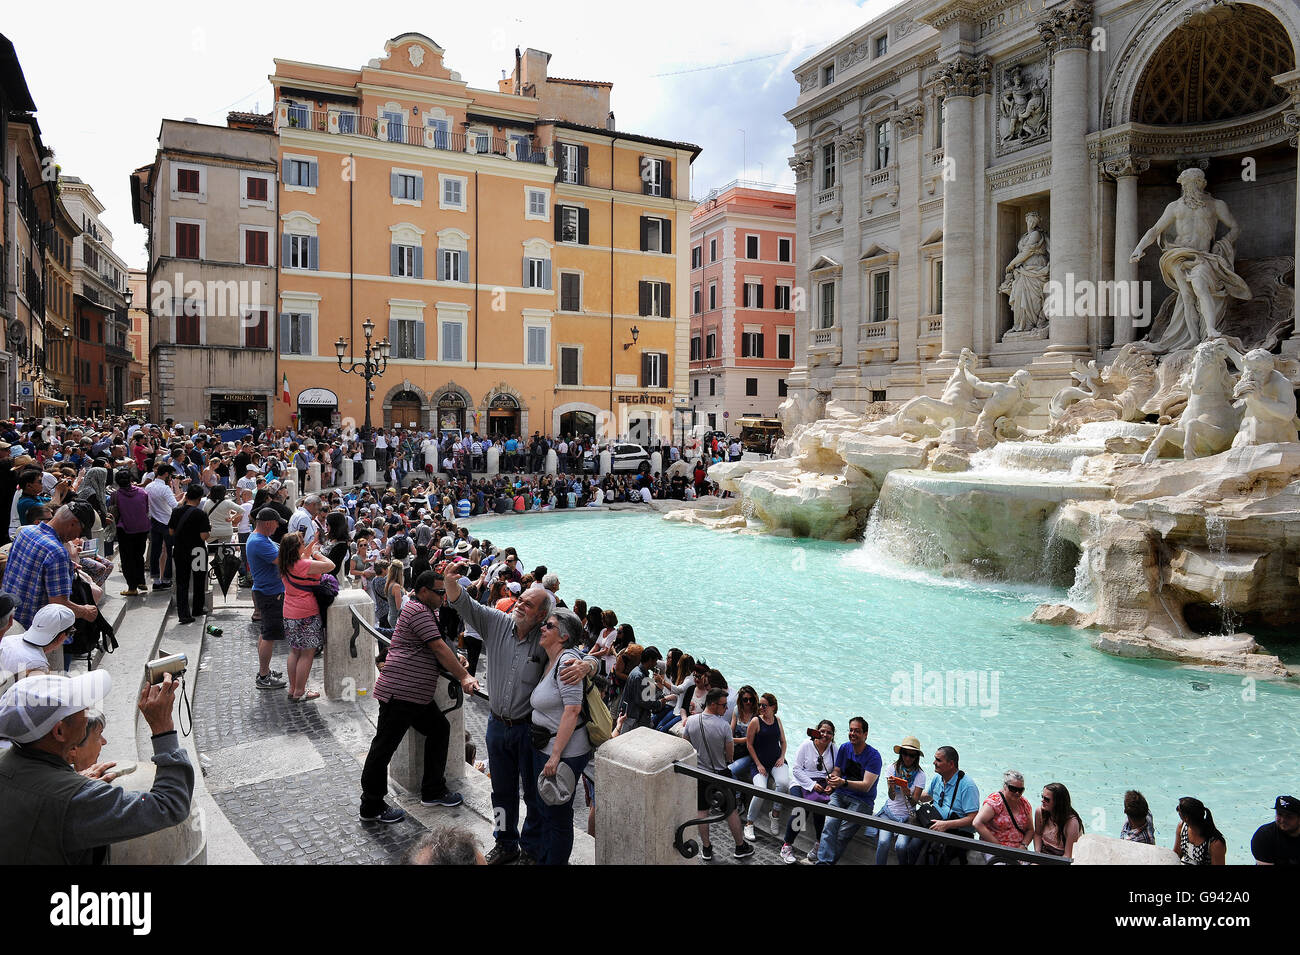 Rome, Italy. Trevi Fountain. Picture by Paul Heyes, Wednesday June 01, 2016. - Stock Image